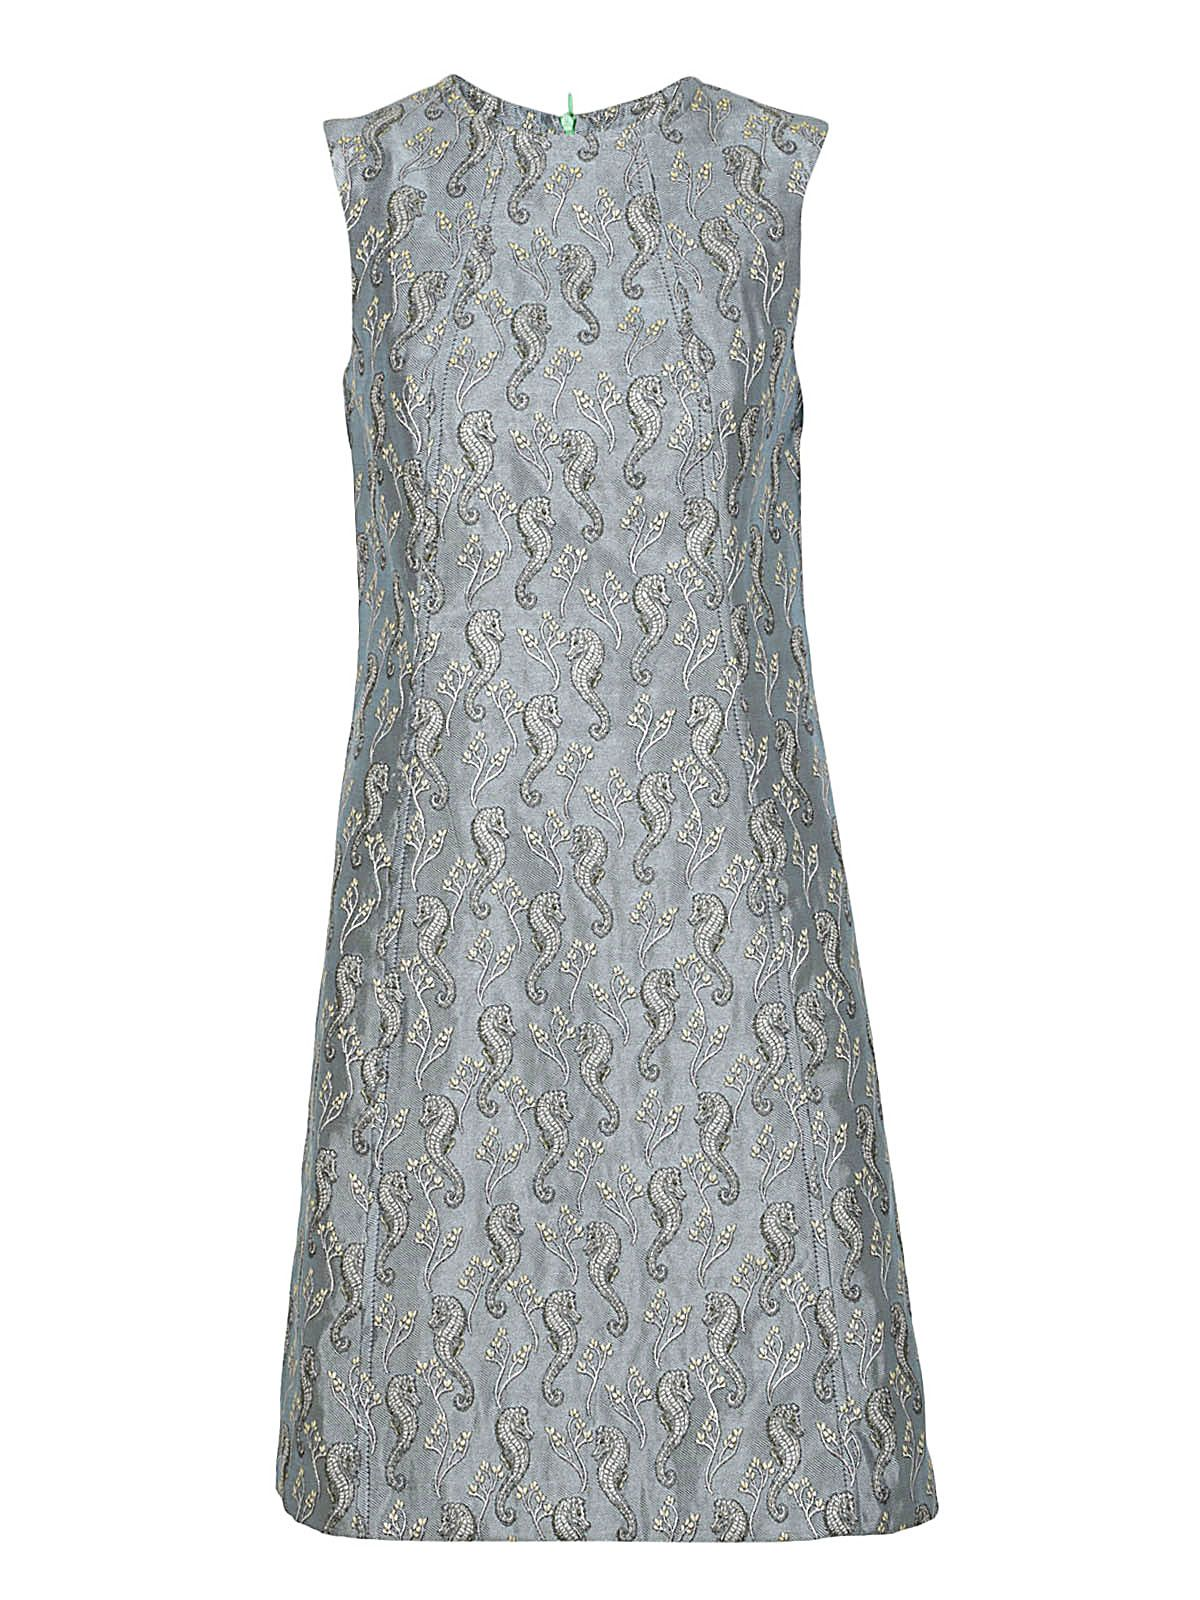 Femme Sea Horse Embroidered Dress 10559748